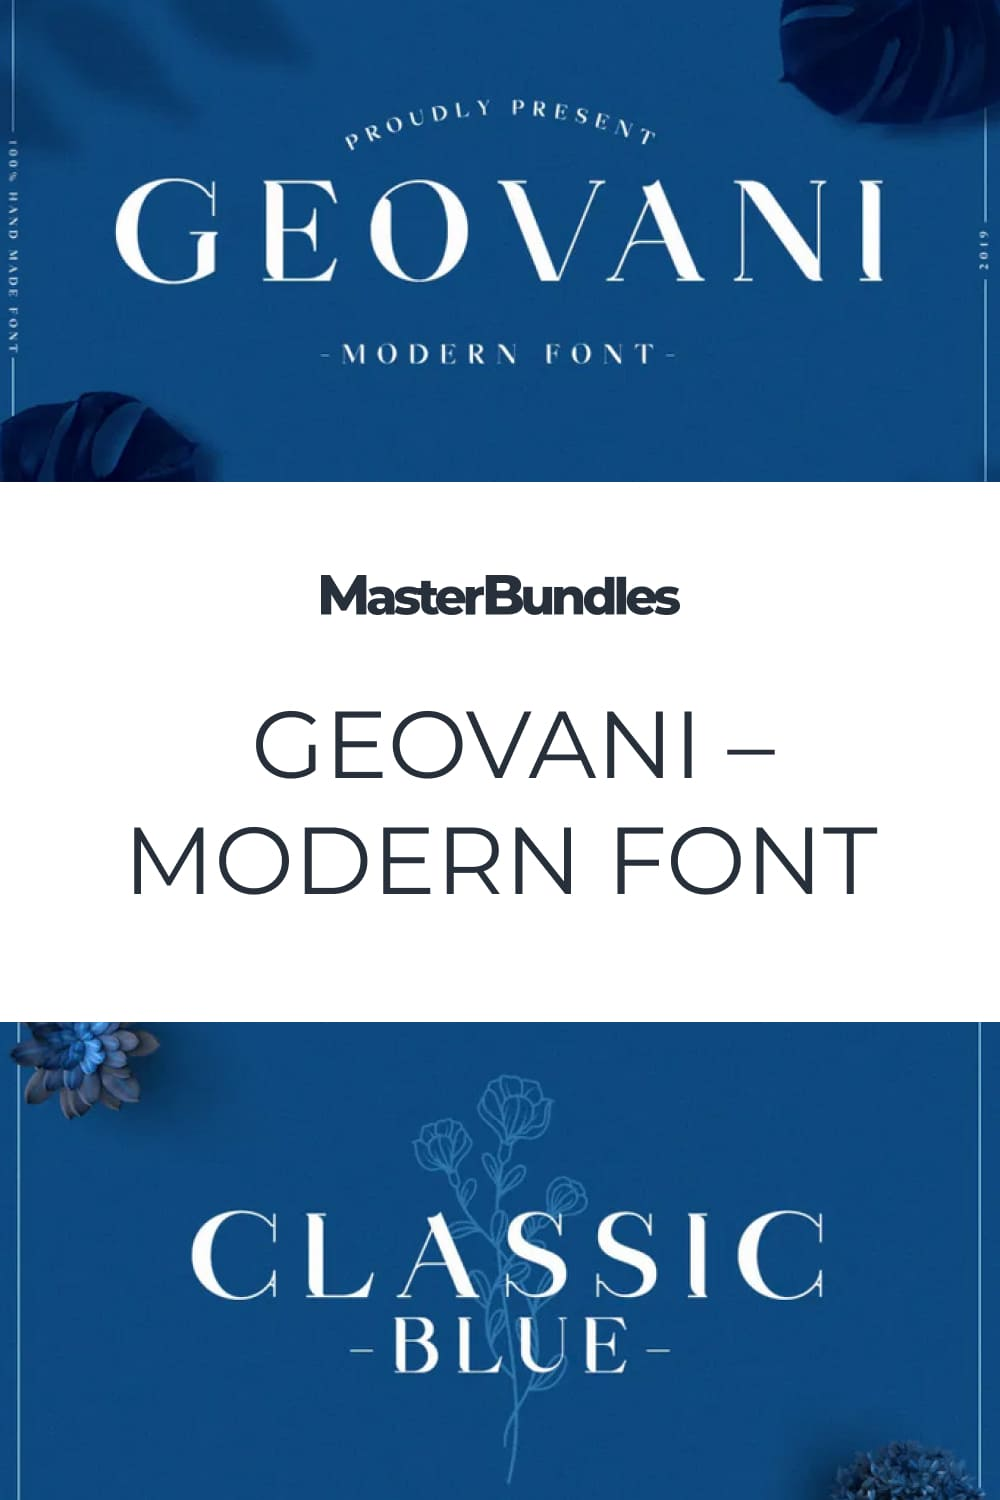 It's a modern sans font with a strong character.